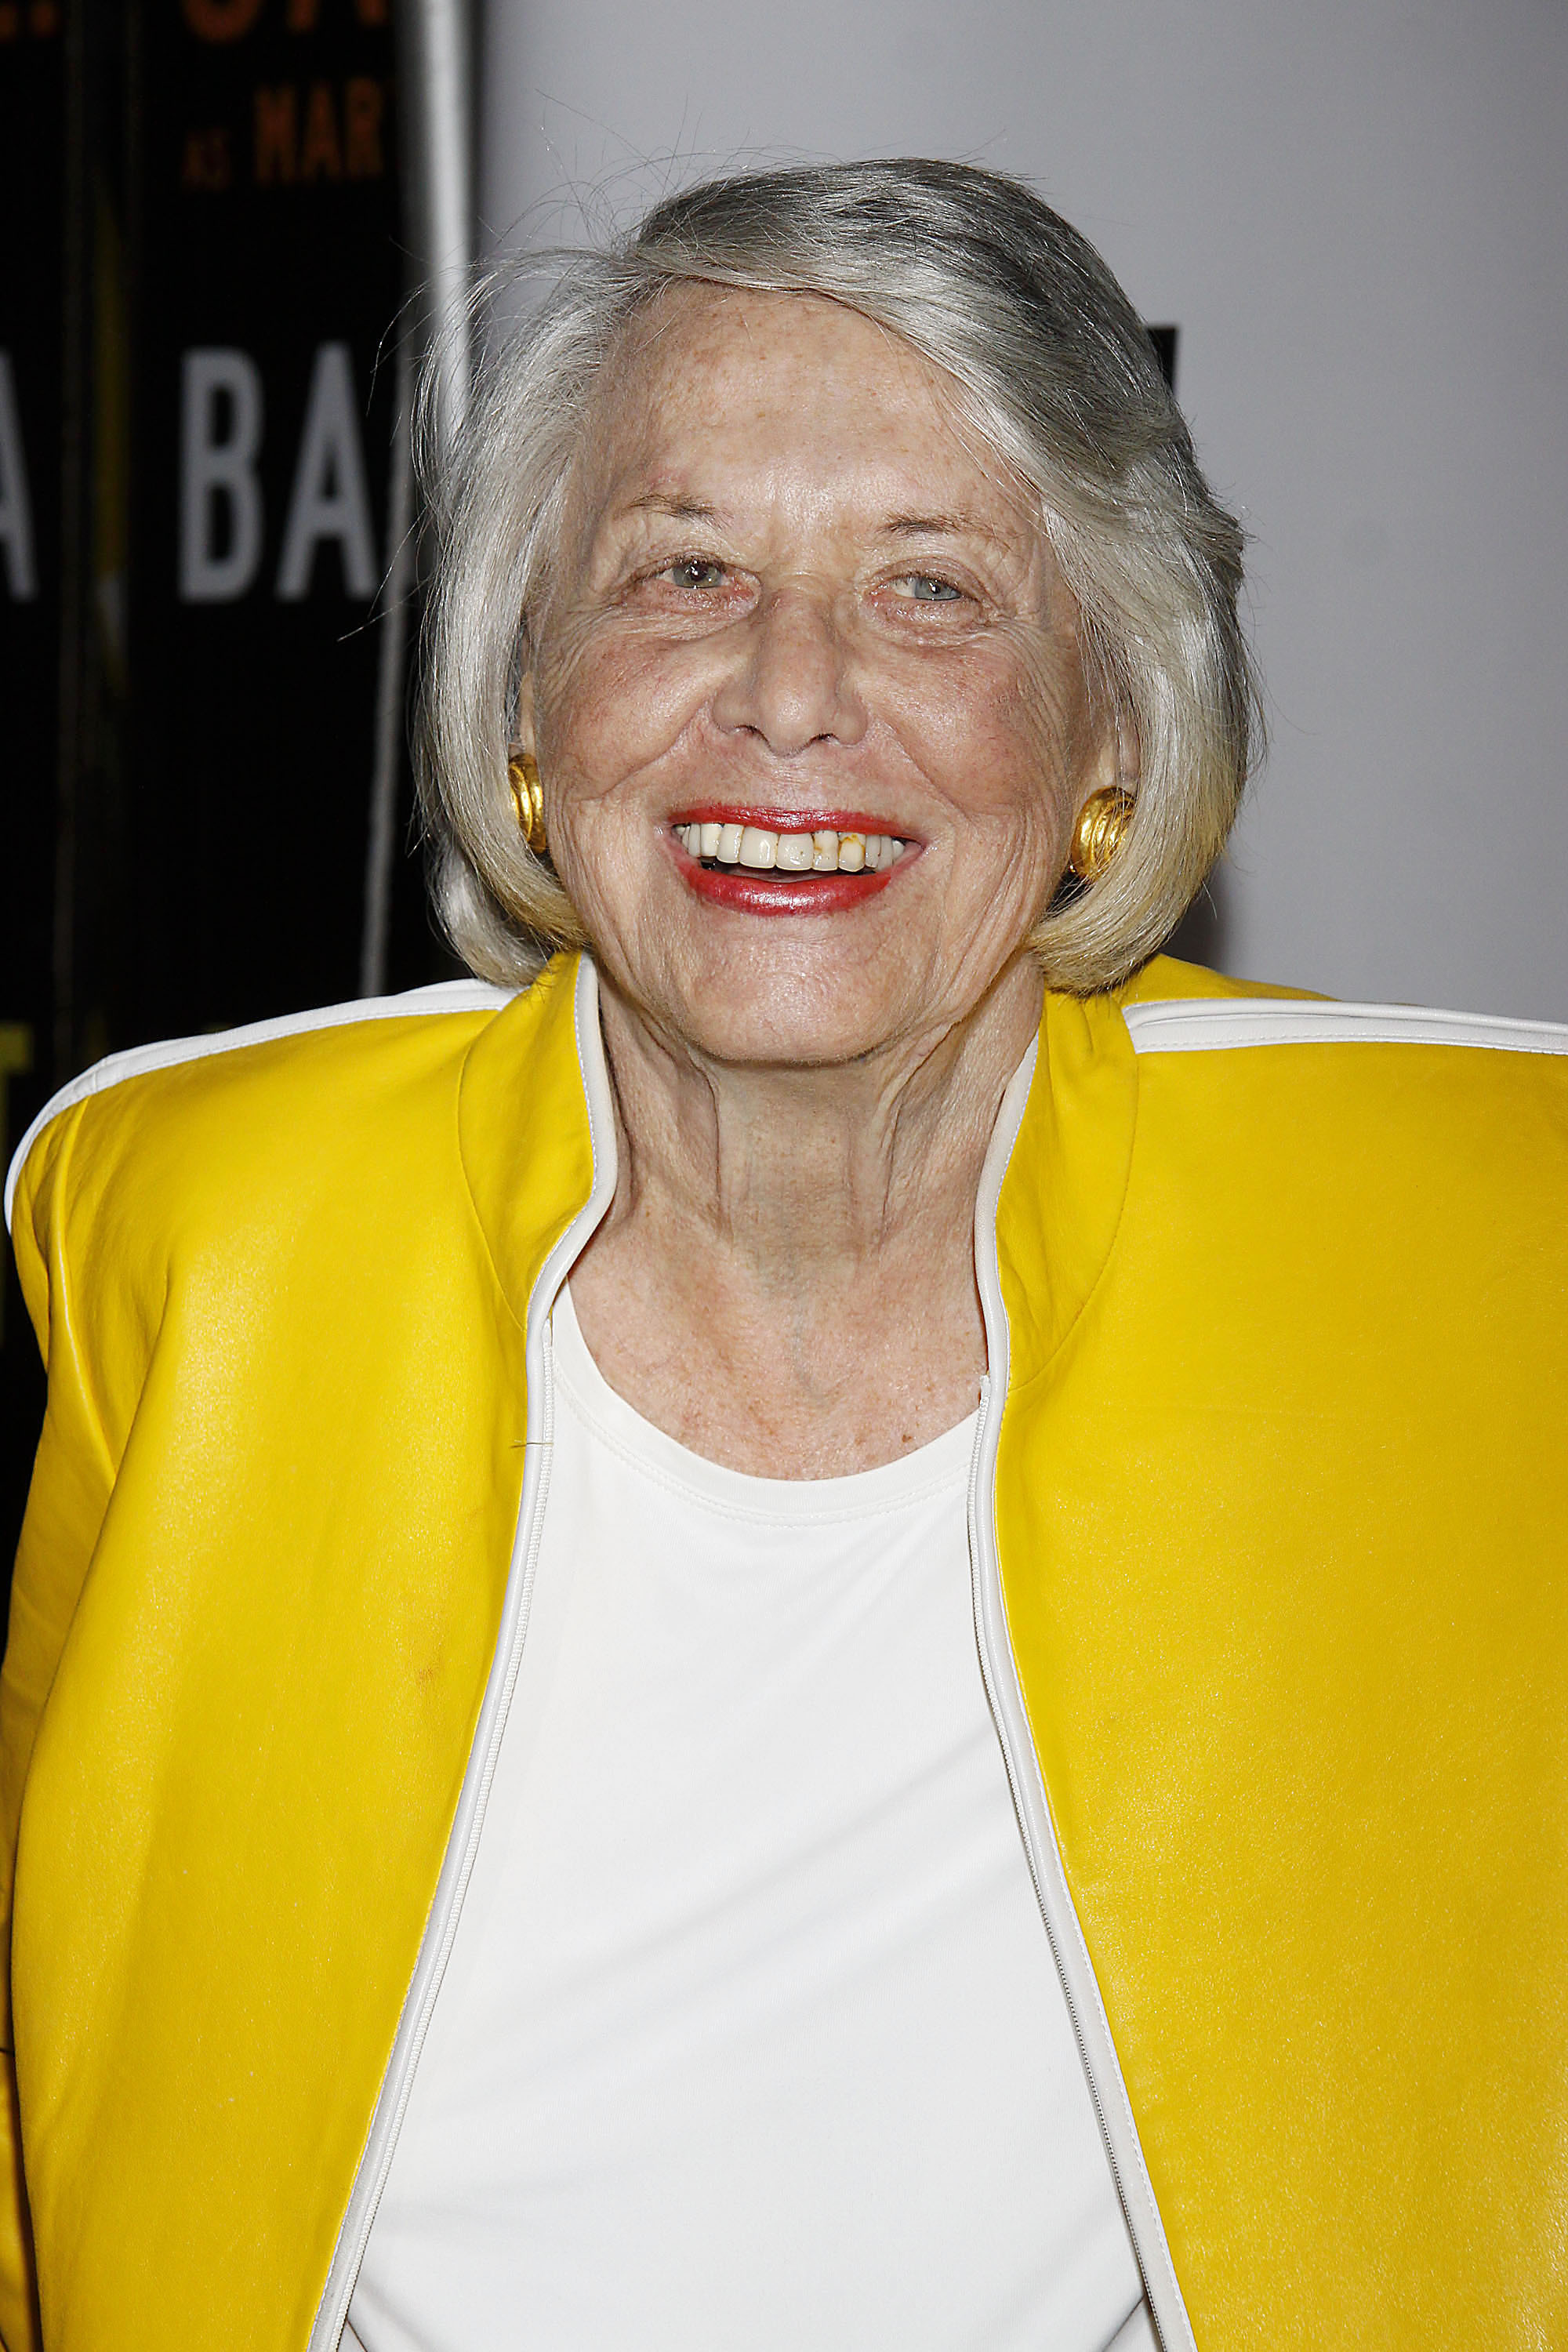 Liz Smith                                    Opening night of the Broadway play 'The Mountaintop' at the Bernard B Jacobs Theatre - Arrivals.                                    Featuring: Liz Smith                  Where: New York City, United States                  When: 13 Oct 2011                  Credit: Joseph Marzullo/Wenn.com